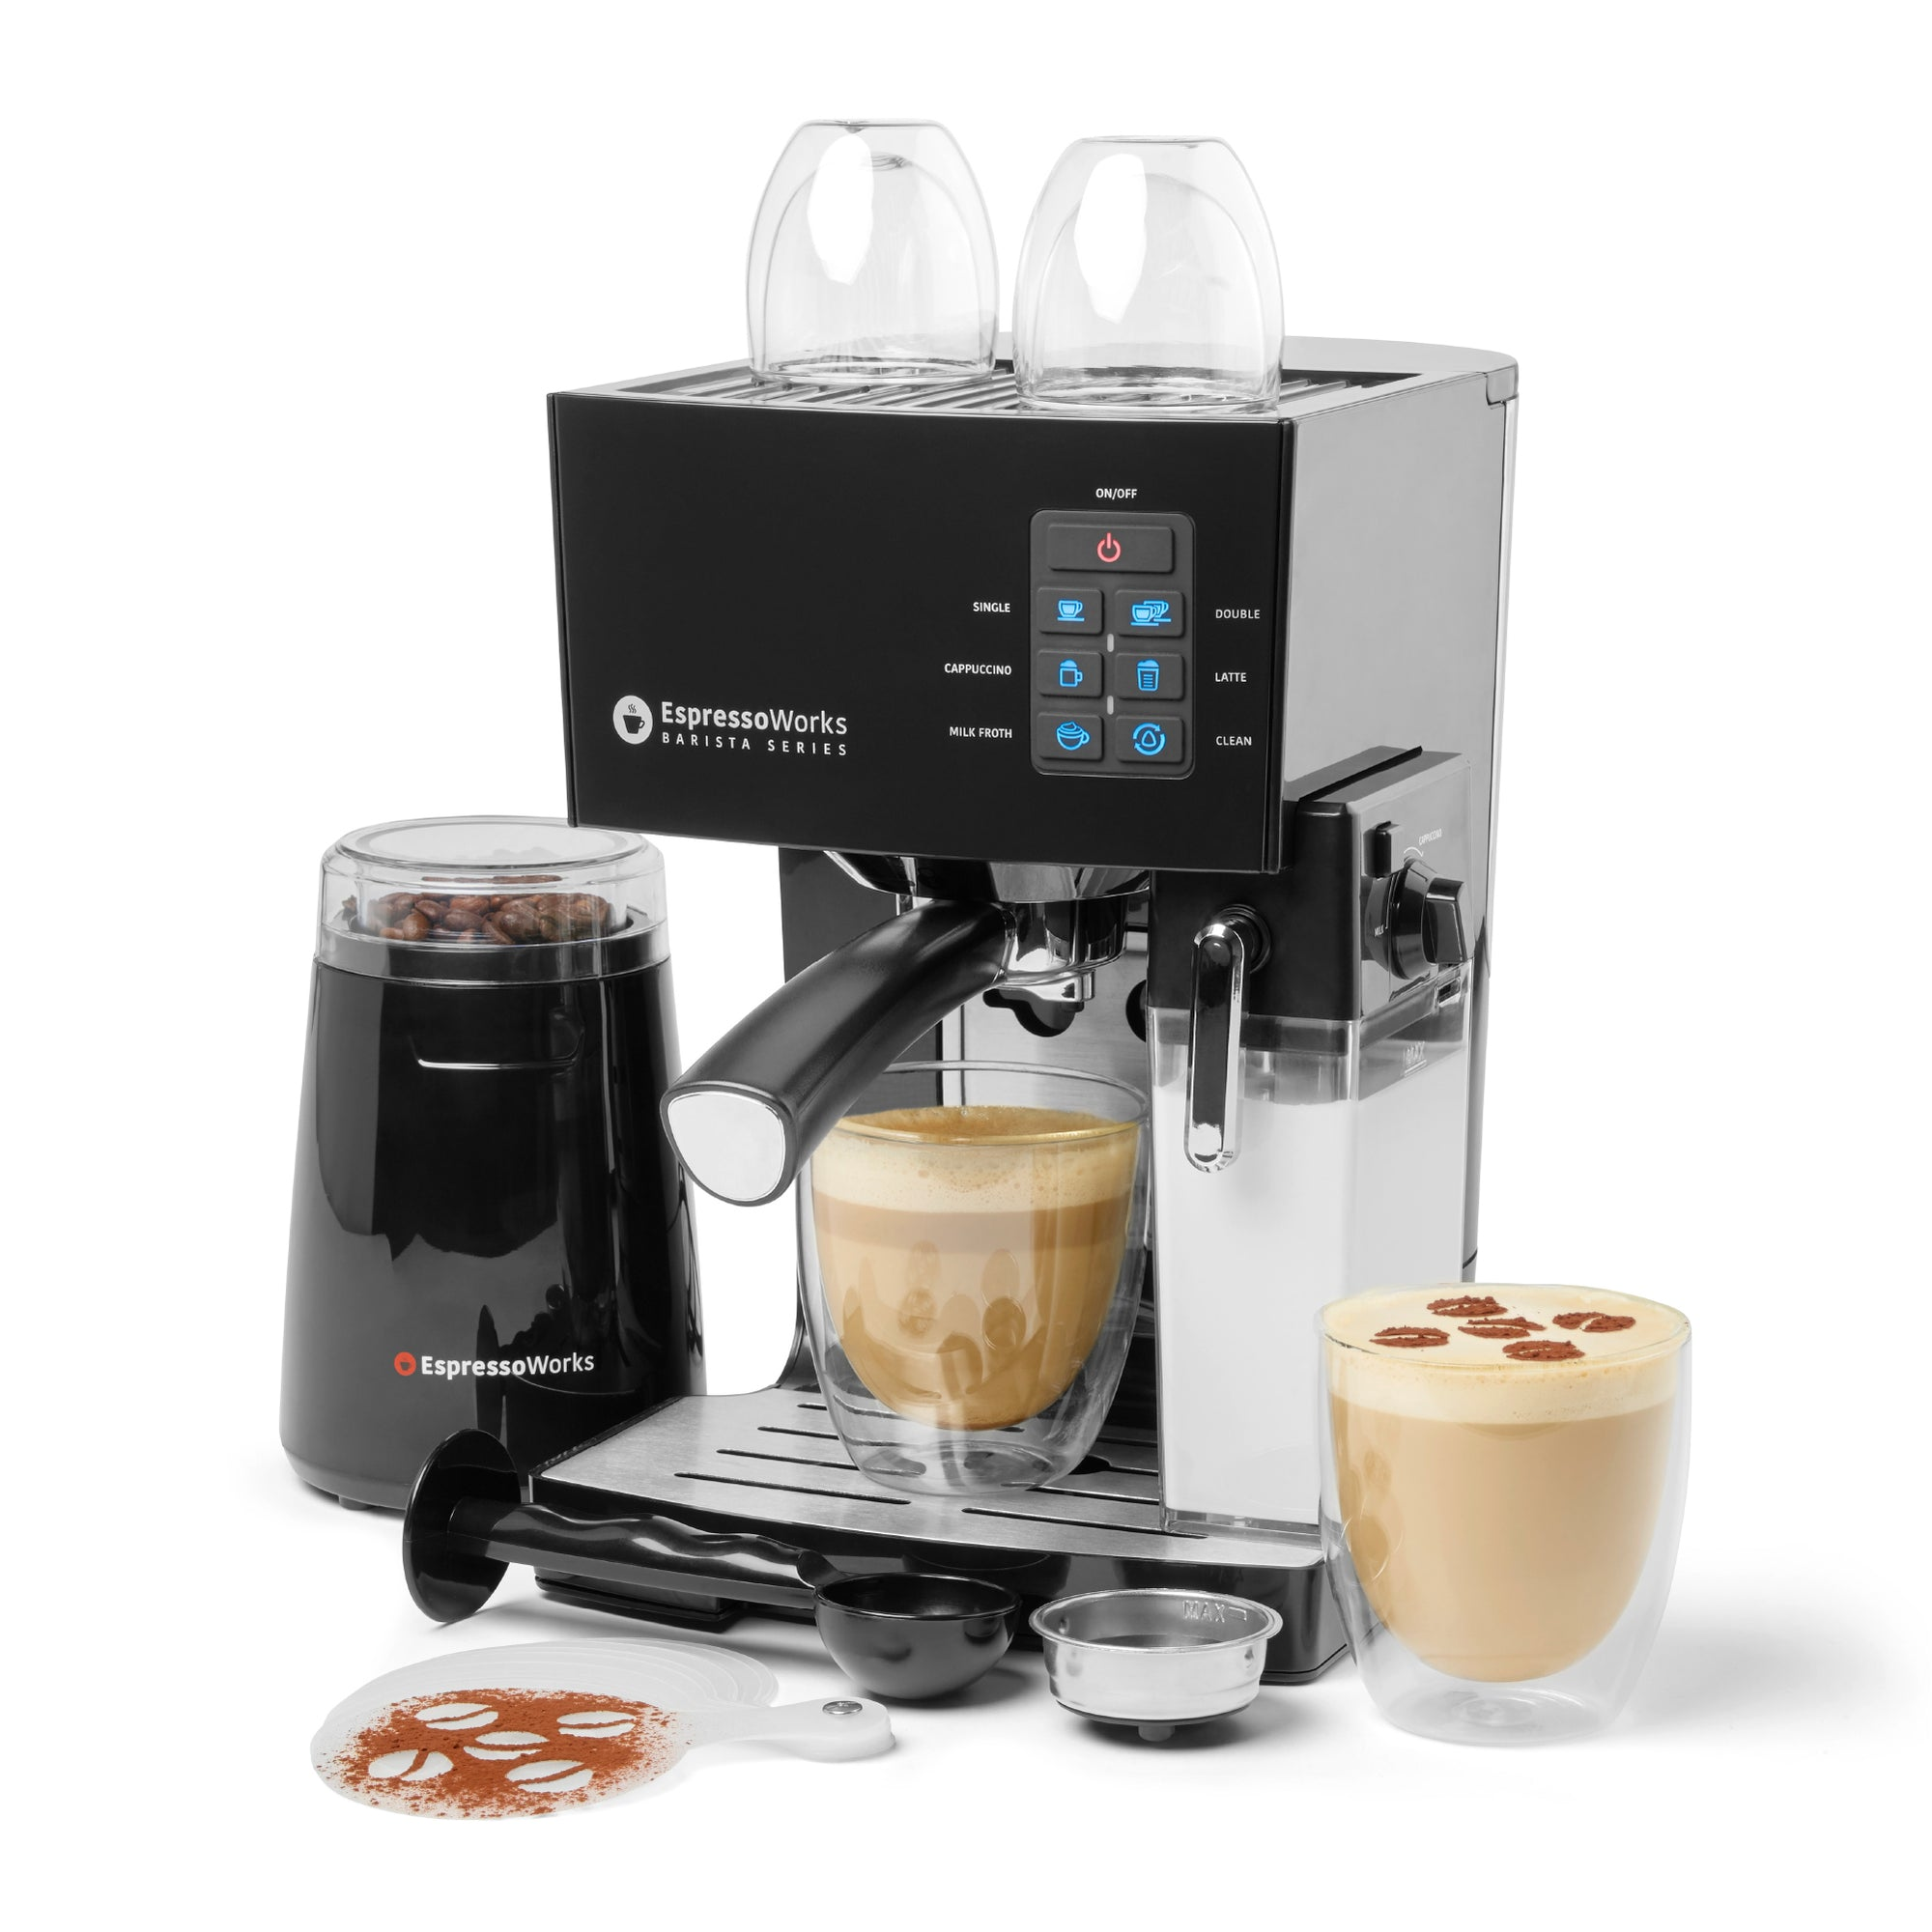 10-Piece Black Espresso & Cappuccino Maker Set making a cappuccino